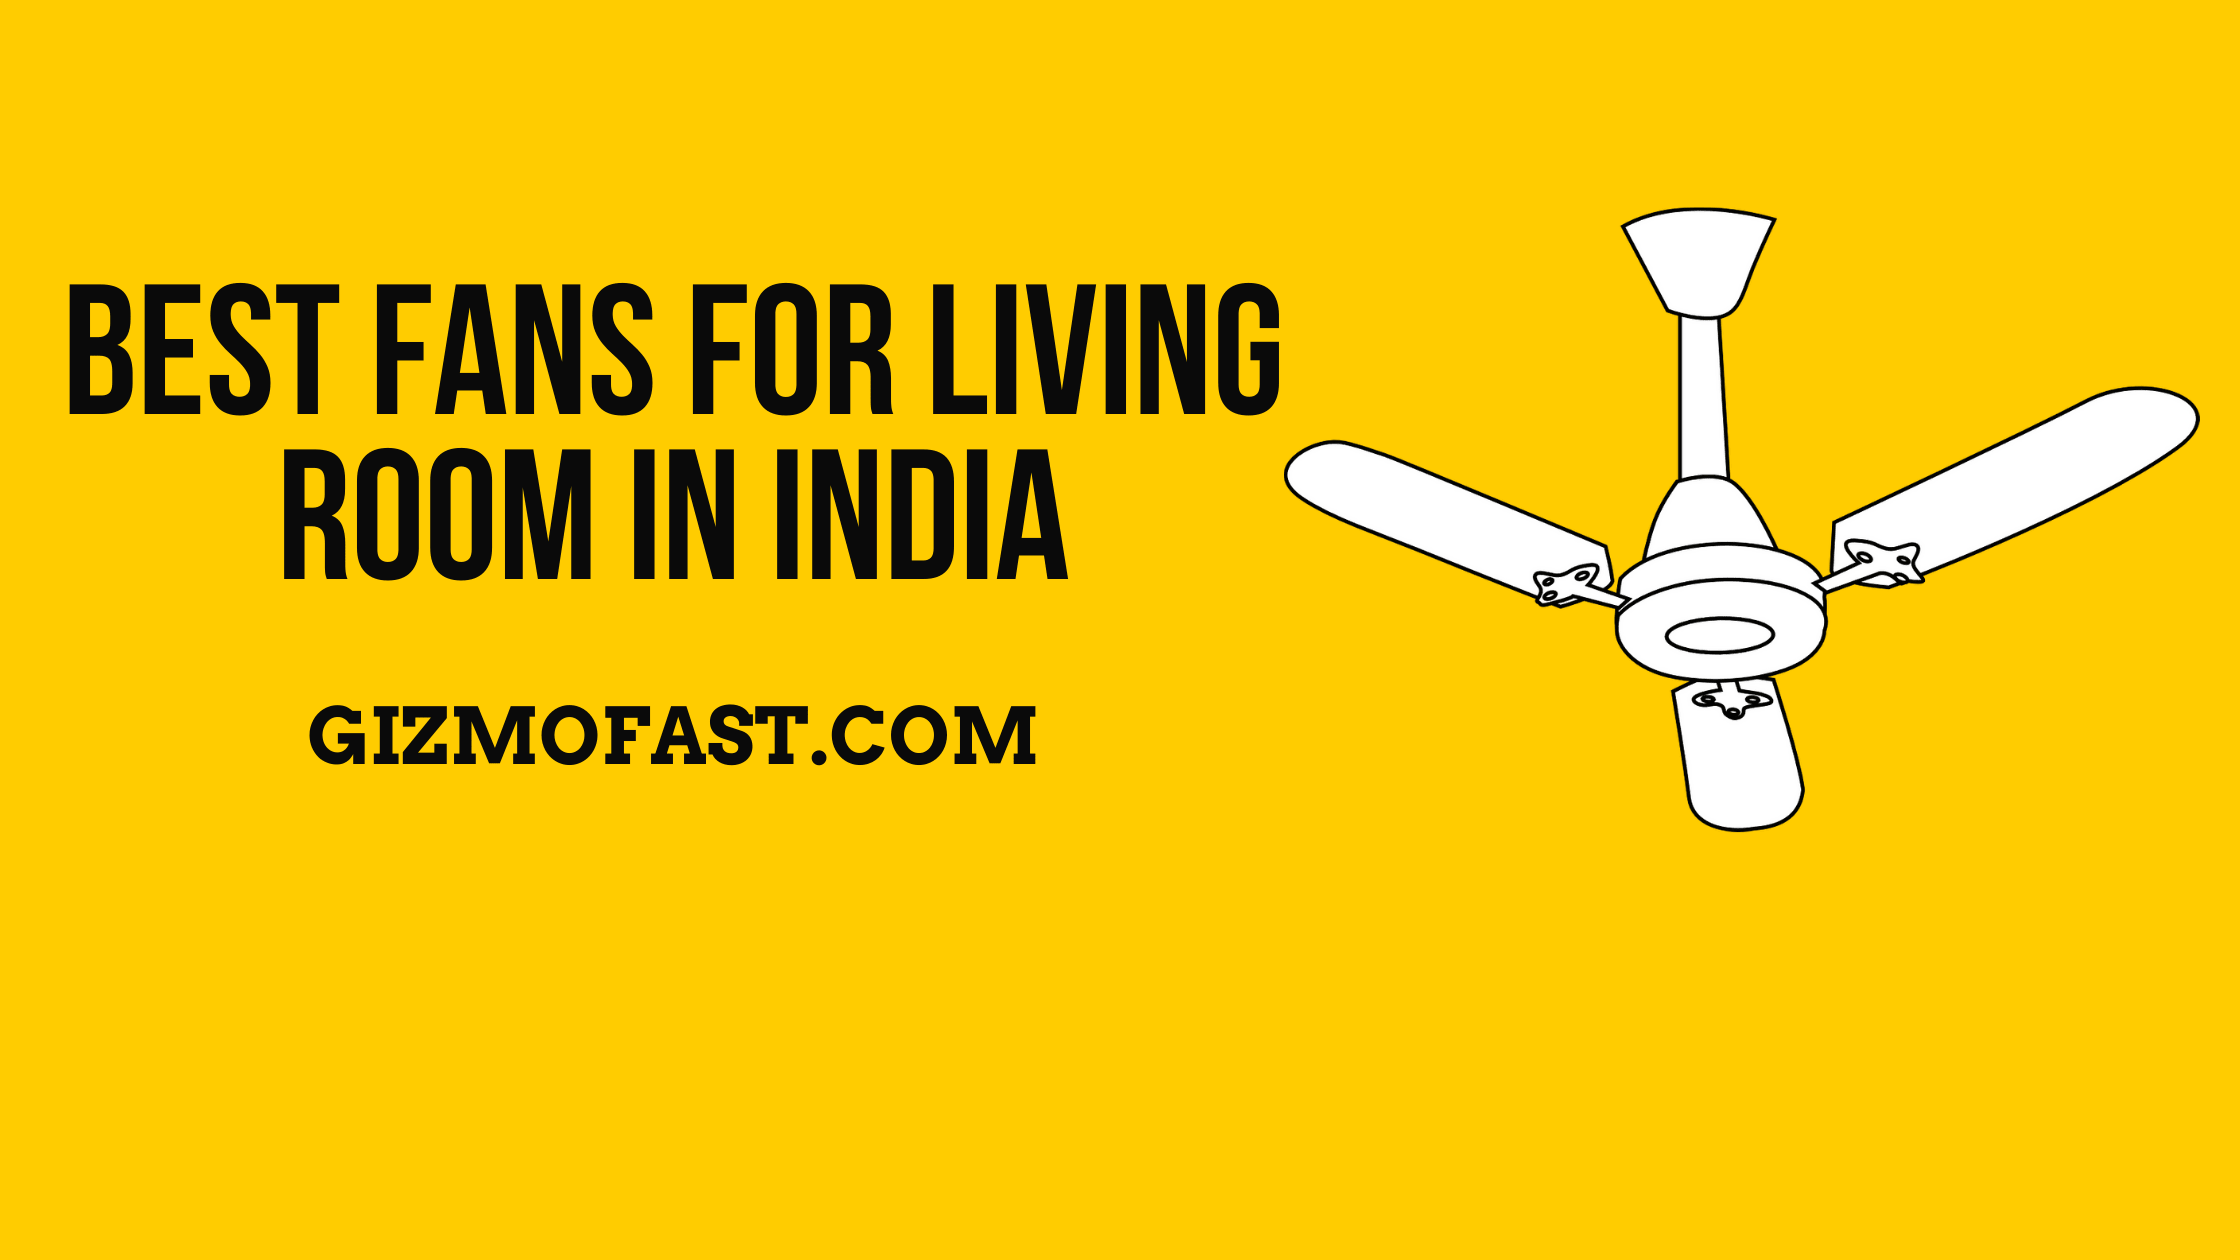 Best Fans For Living Room in India